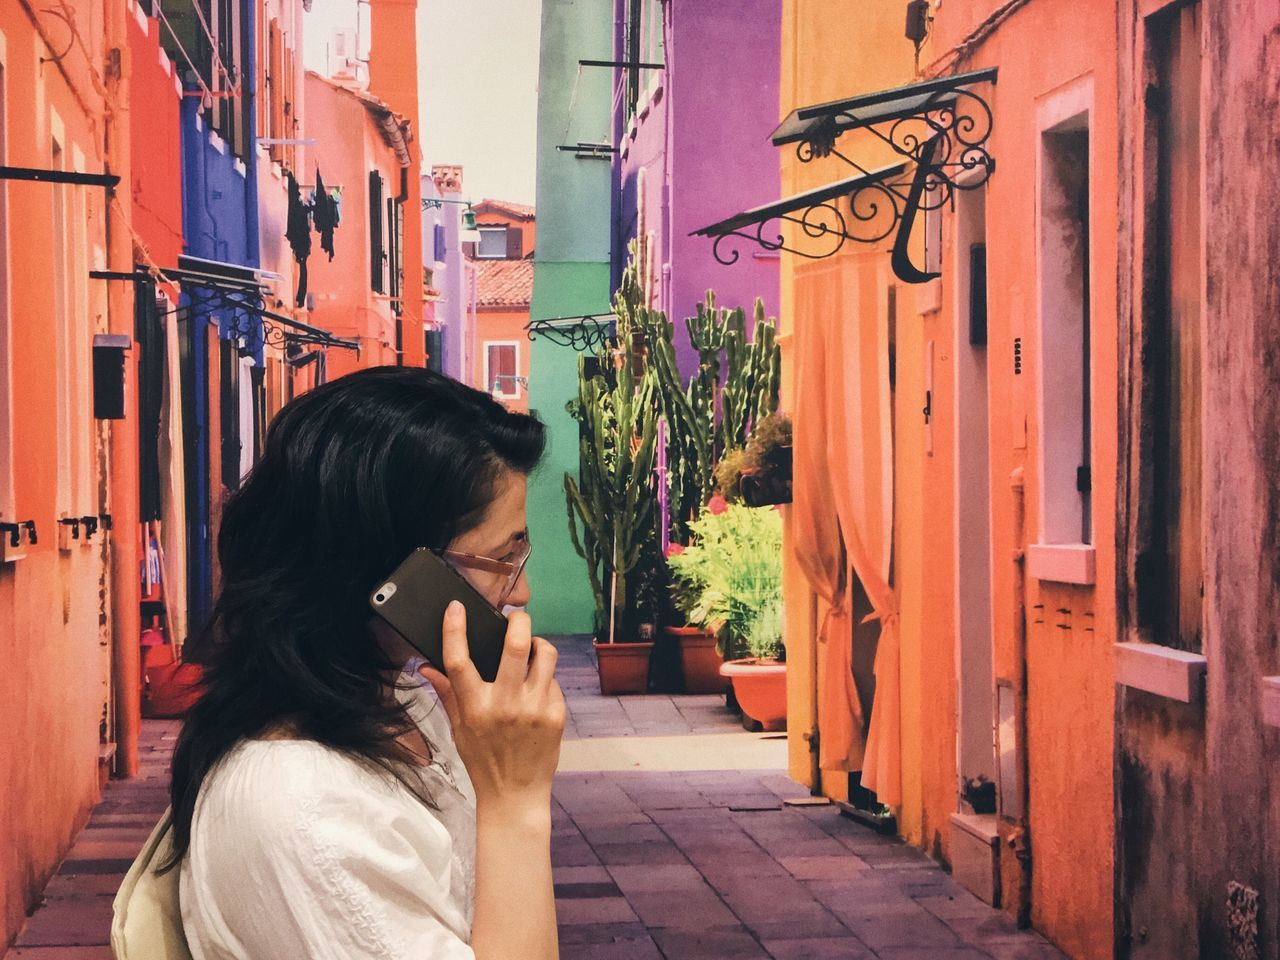 Conversations... Communication Building Exterior Architecture Built Structure Real People Outdoors Women Lifestyles Smiling Wireless Technology City Day Technology Young Adult Adult People Colorful VSCO Mobile Fashion Freshness Summer Details Of My Life Street Conversation